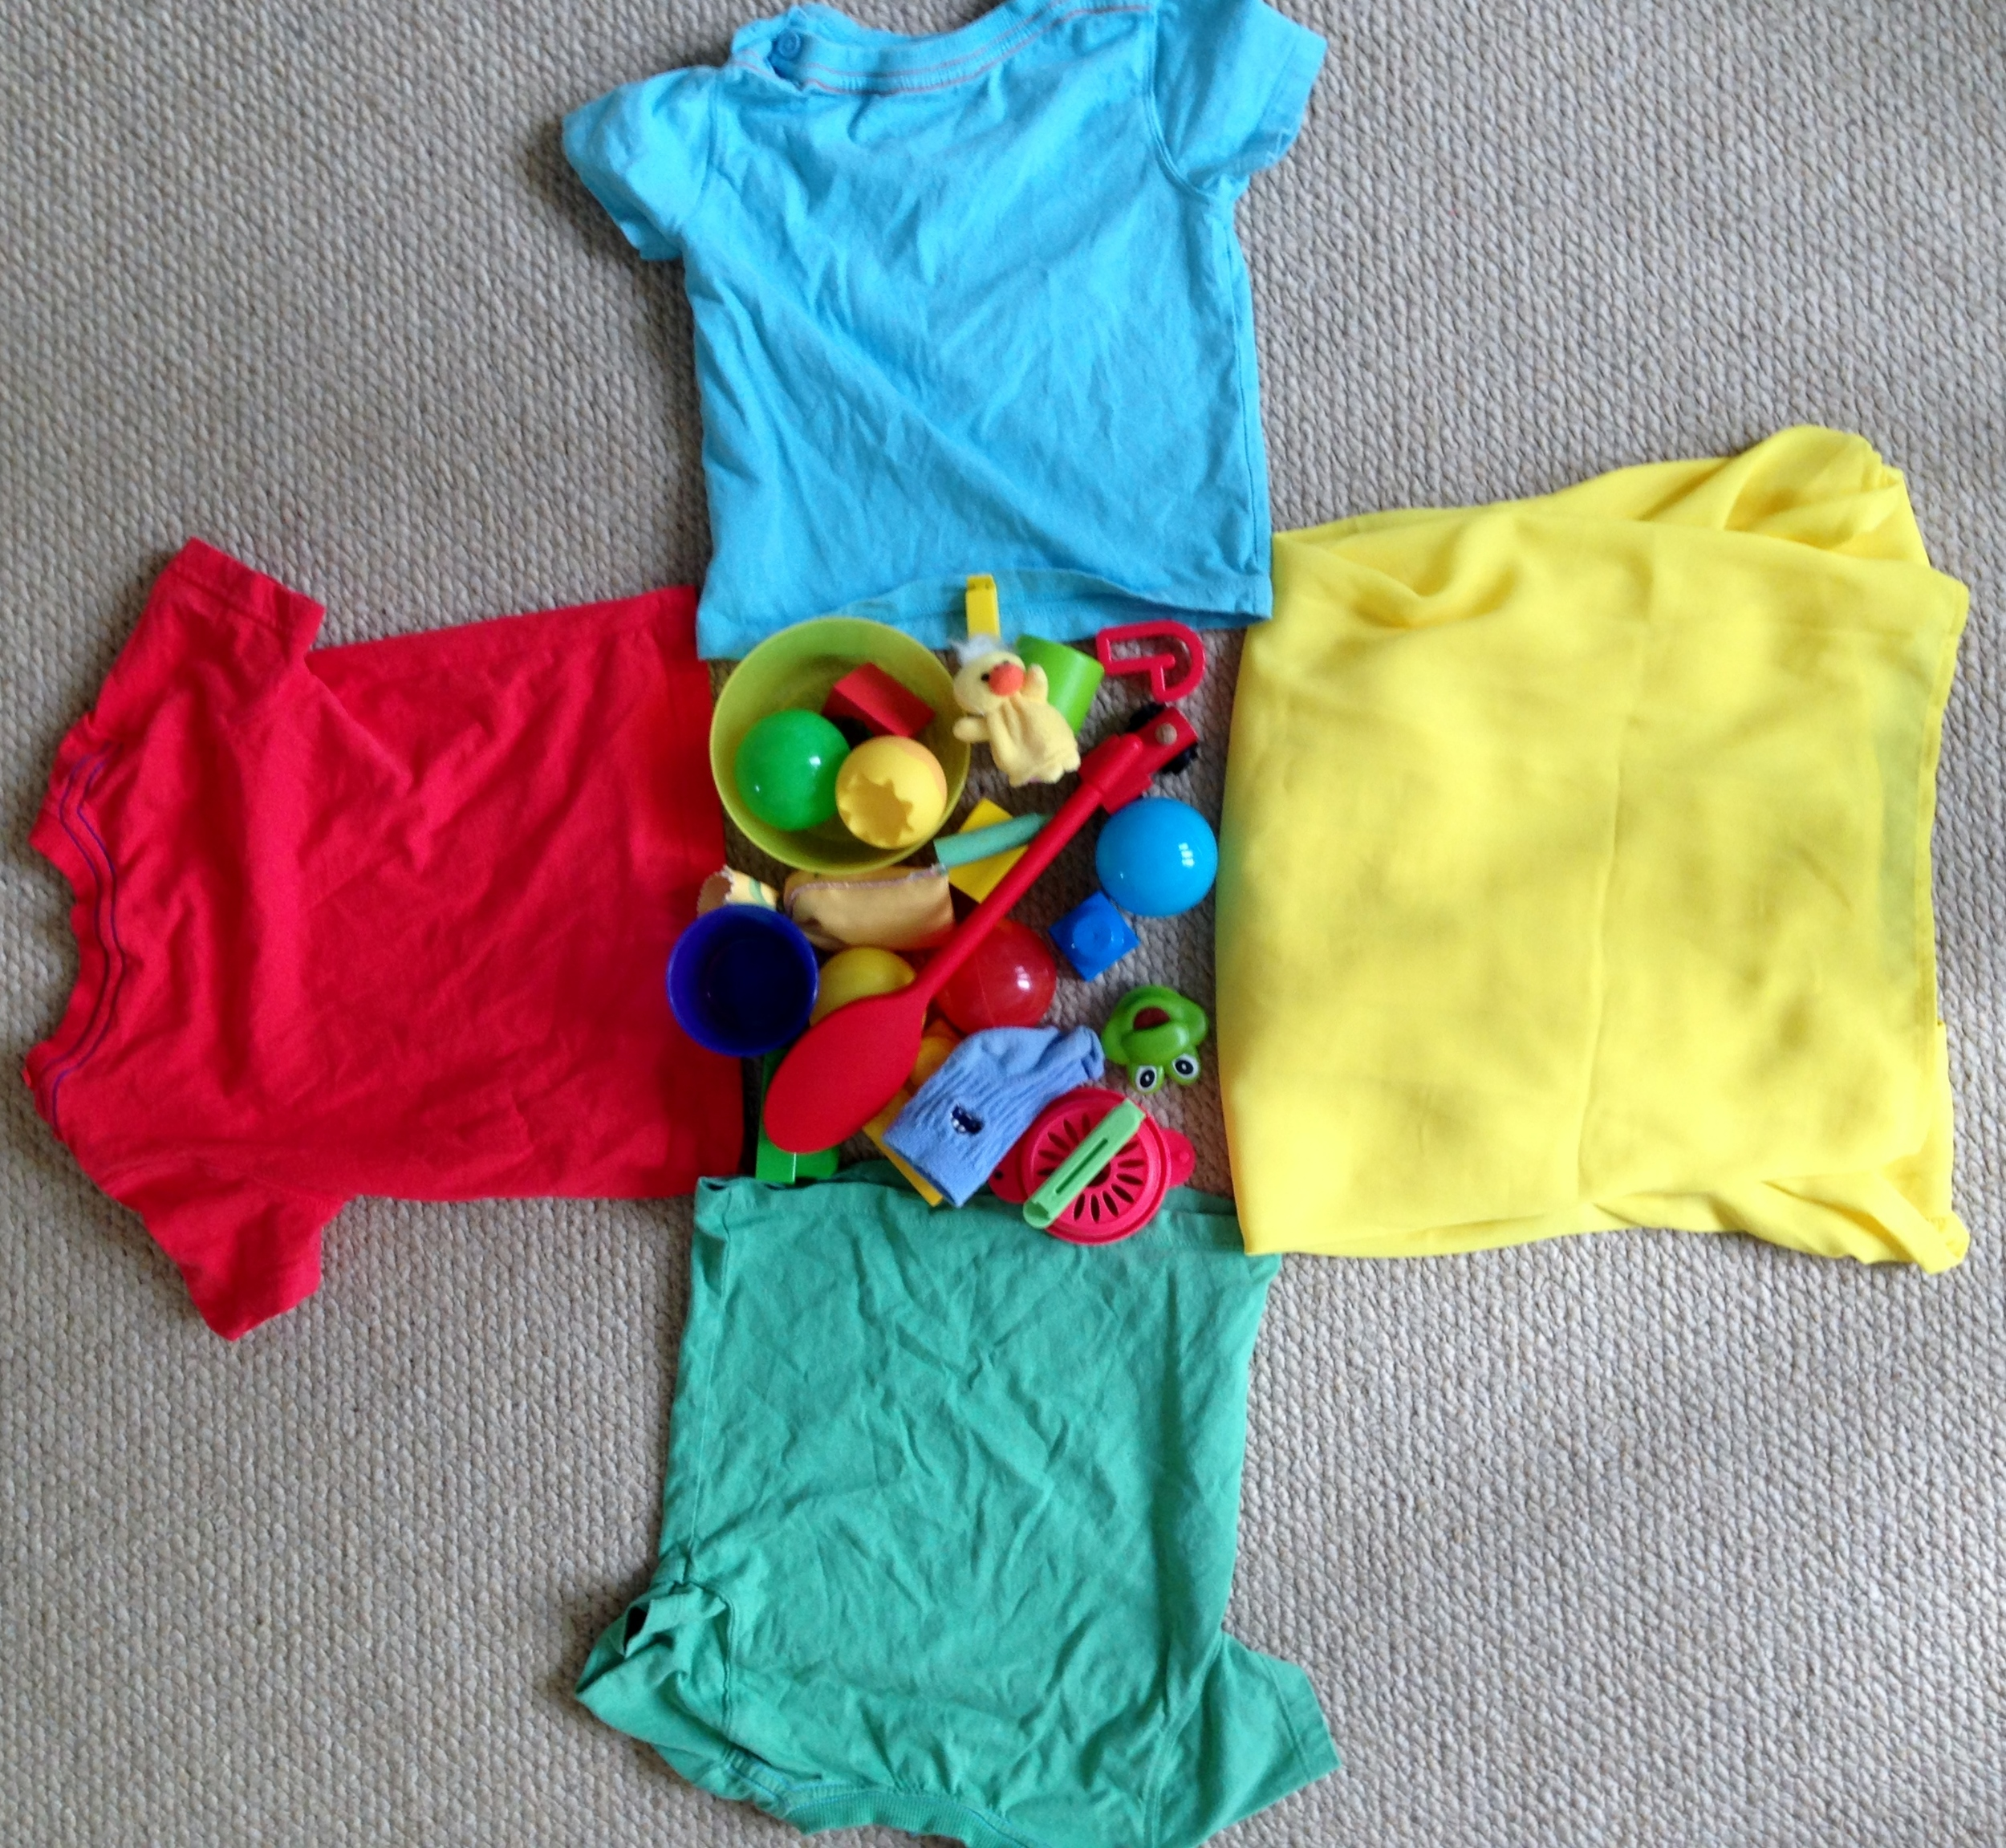 colour sorting toddler activities hampstead mums brightplaybox